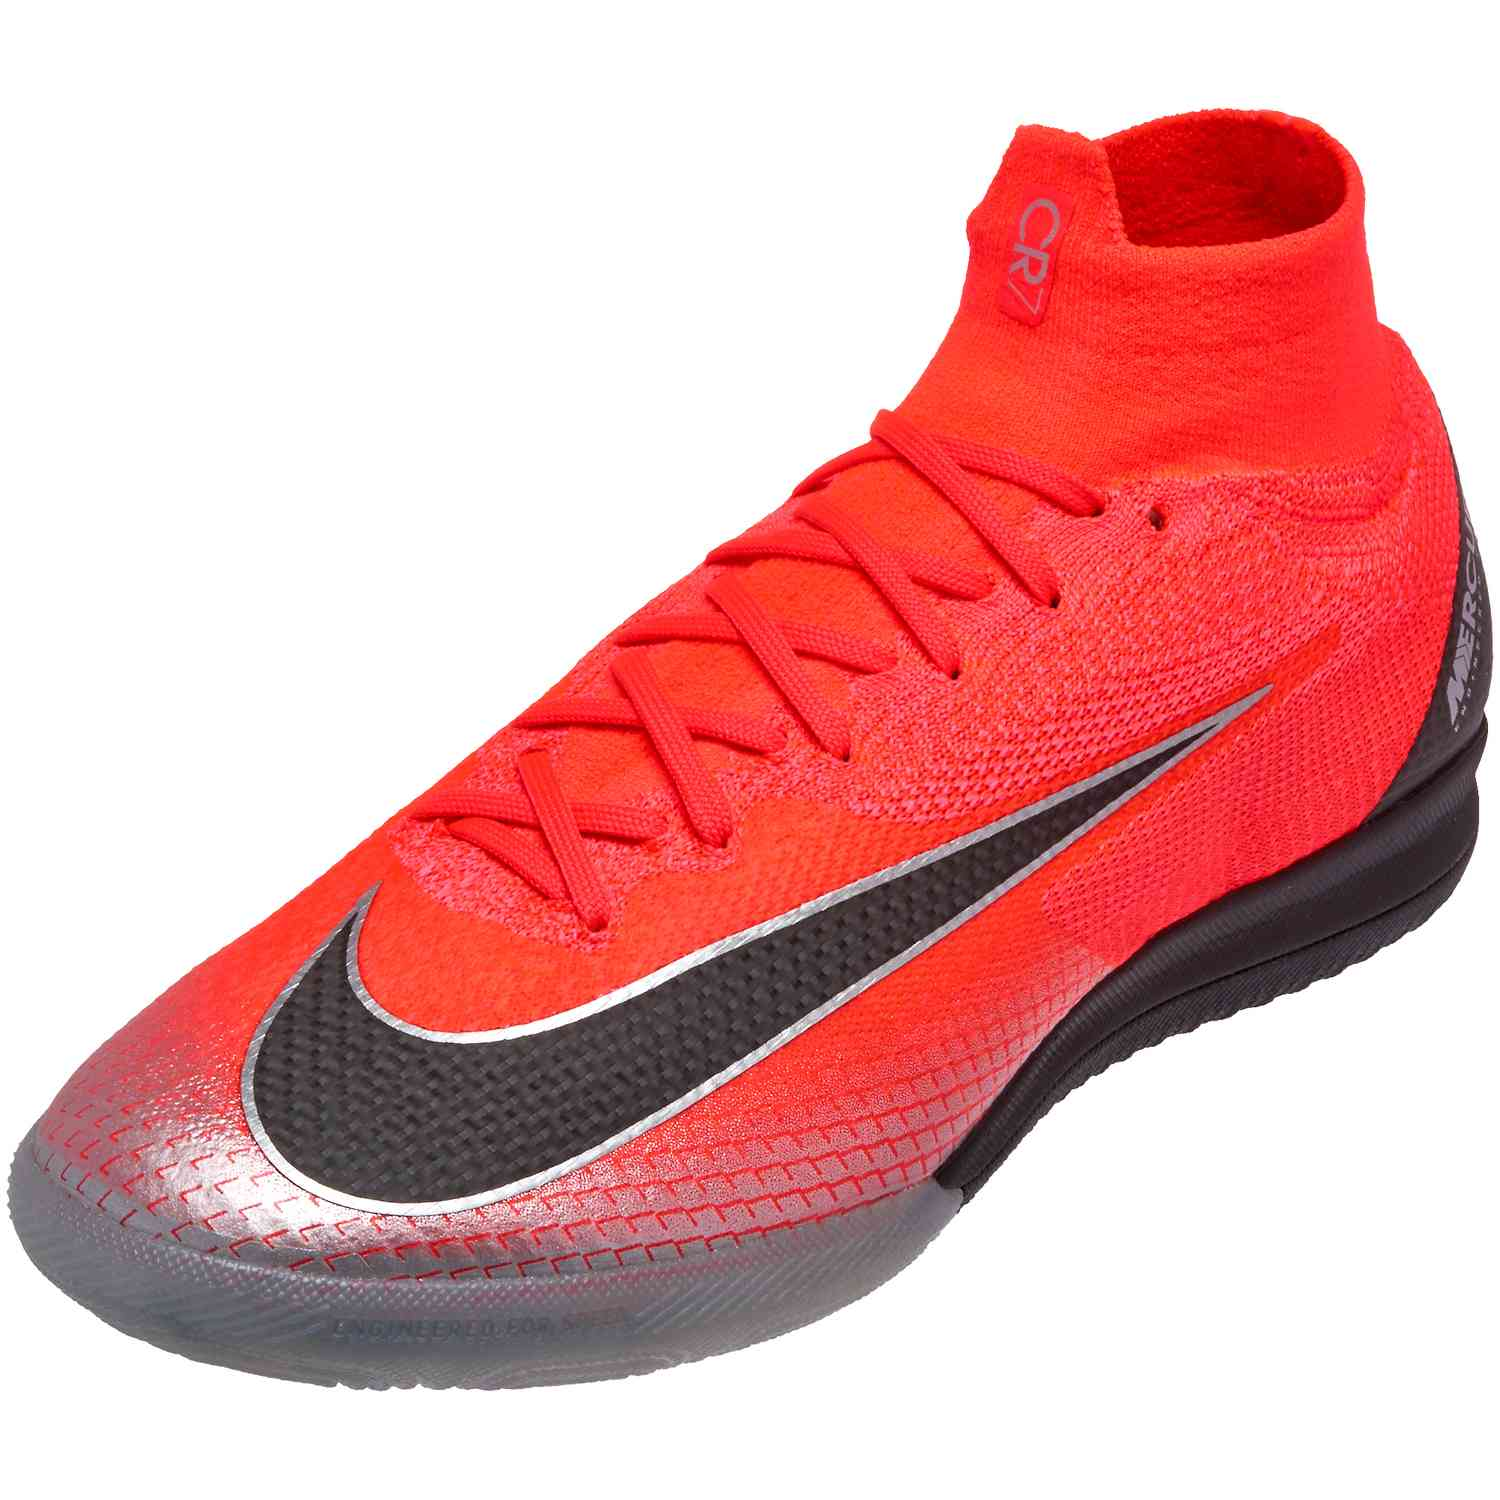 Nike Mercurial SuperflyX VI Elite IC Indoor Futsal White